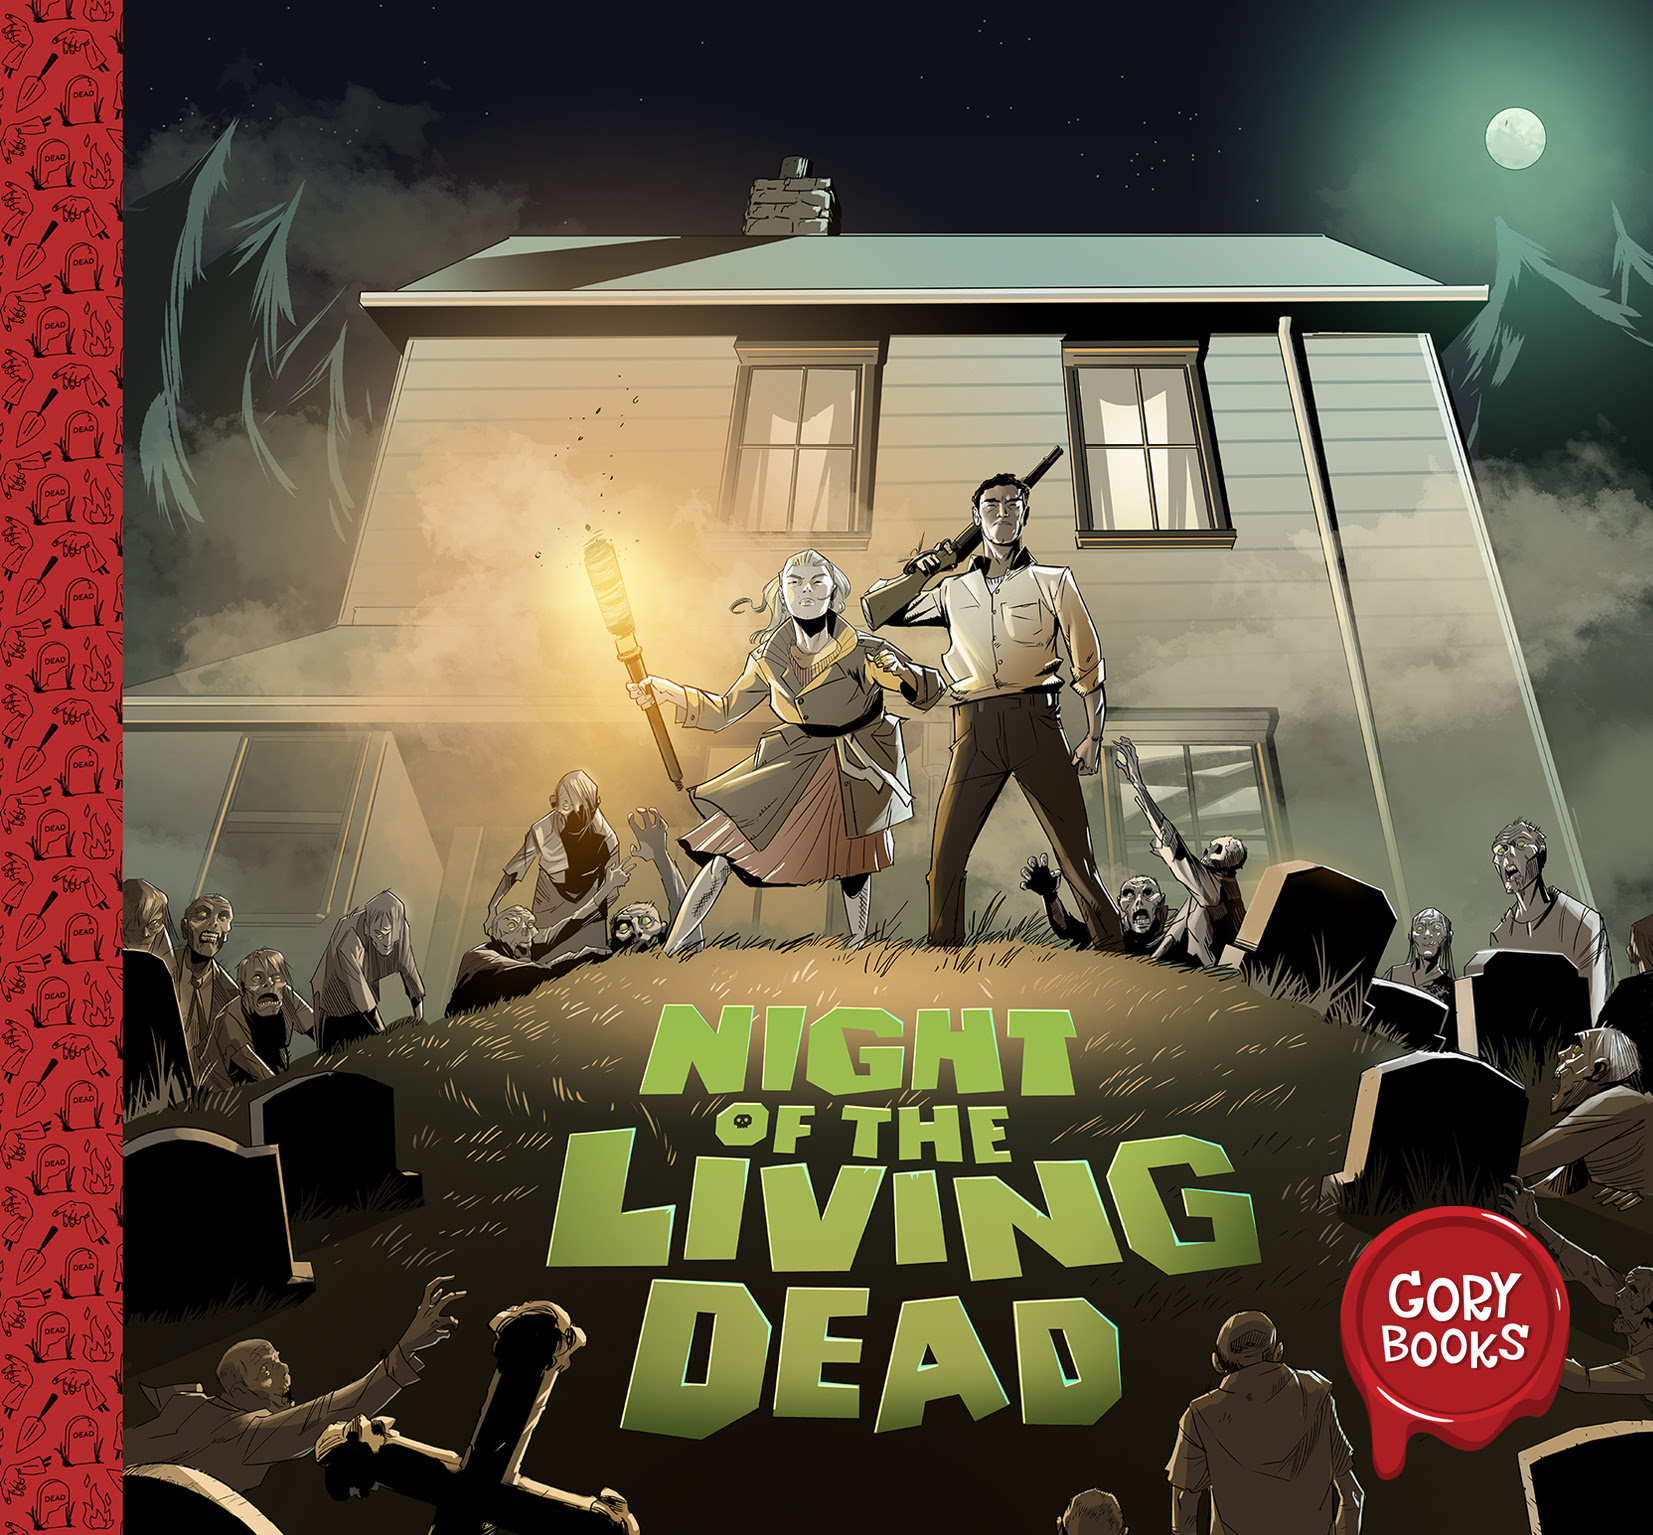 night of the living dead gorybooks (3)